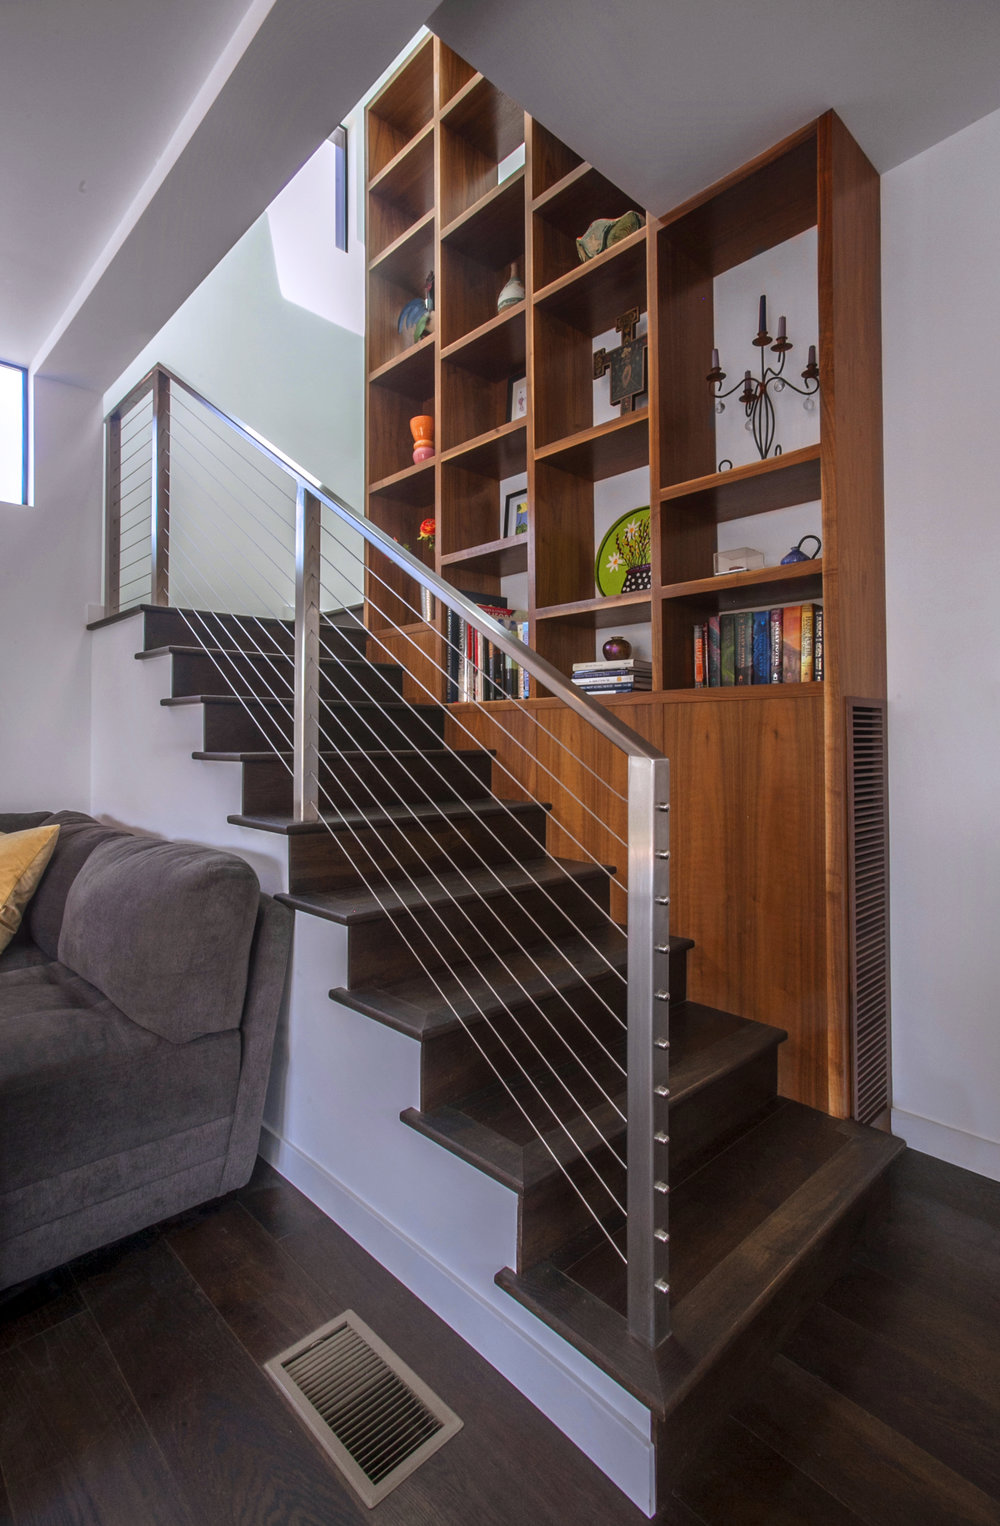 The new staircase, with an integrated custom walnut bookshelf in the center of the switchback and three large skylights above, links the two floors.